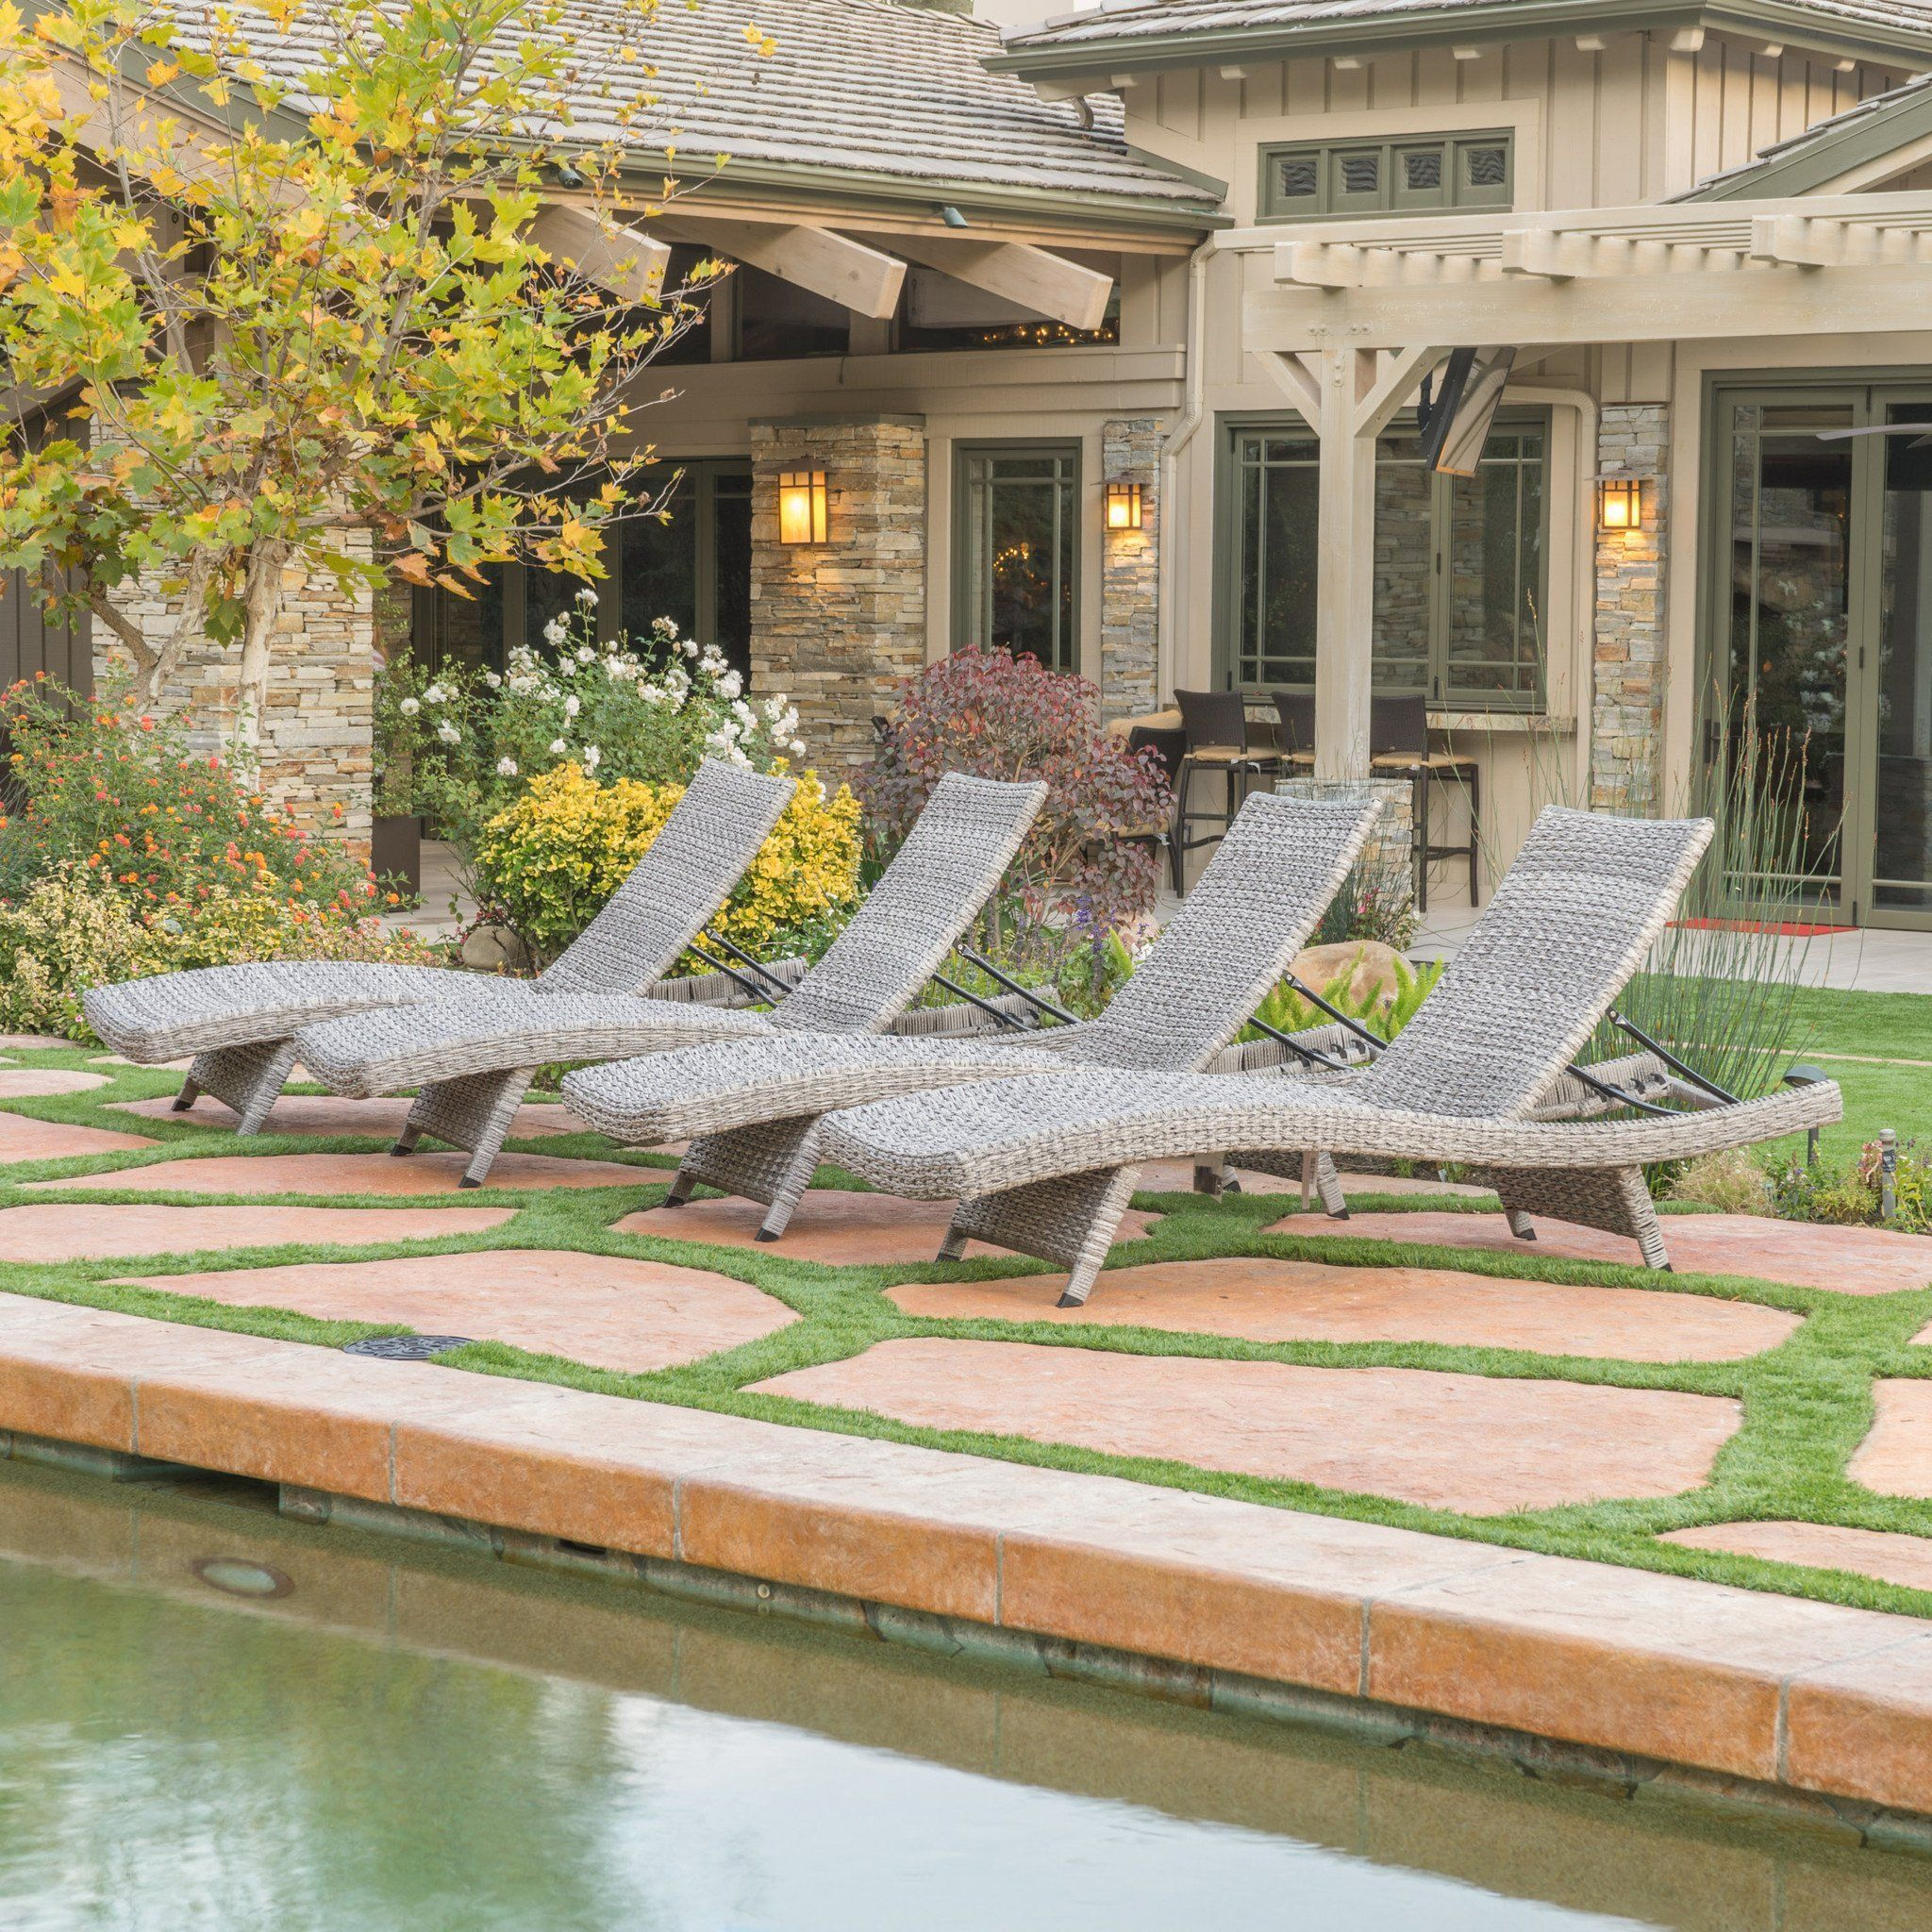 Isle Of Palms Outdoor Grey Wicker Chaise Lounge Set 4